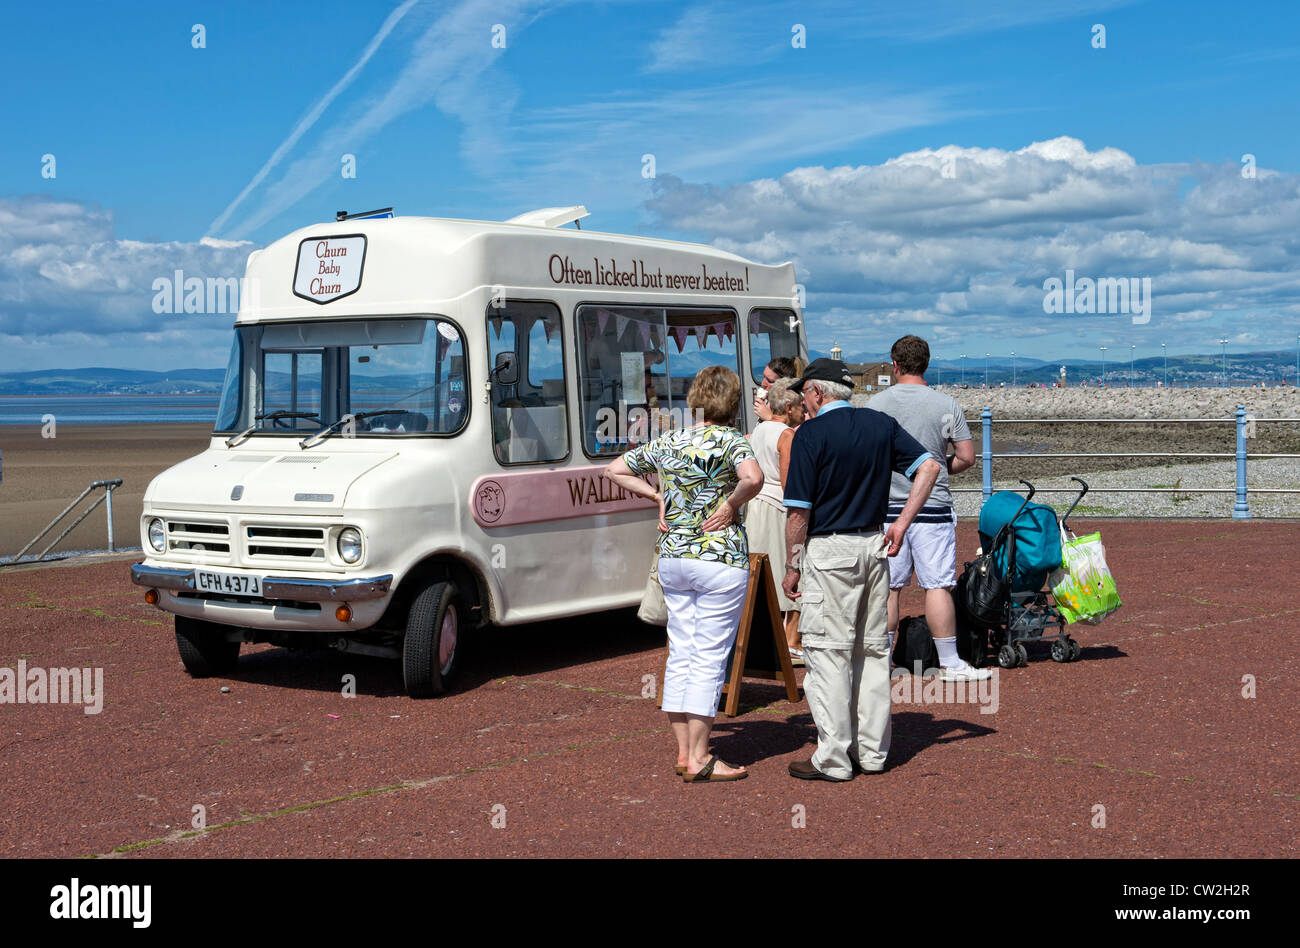 People buying ice creams from an ice cream van on the promenade in Morecambe, Lancashire - Stock Image